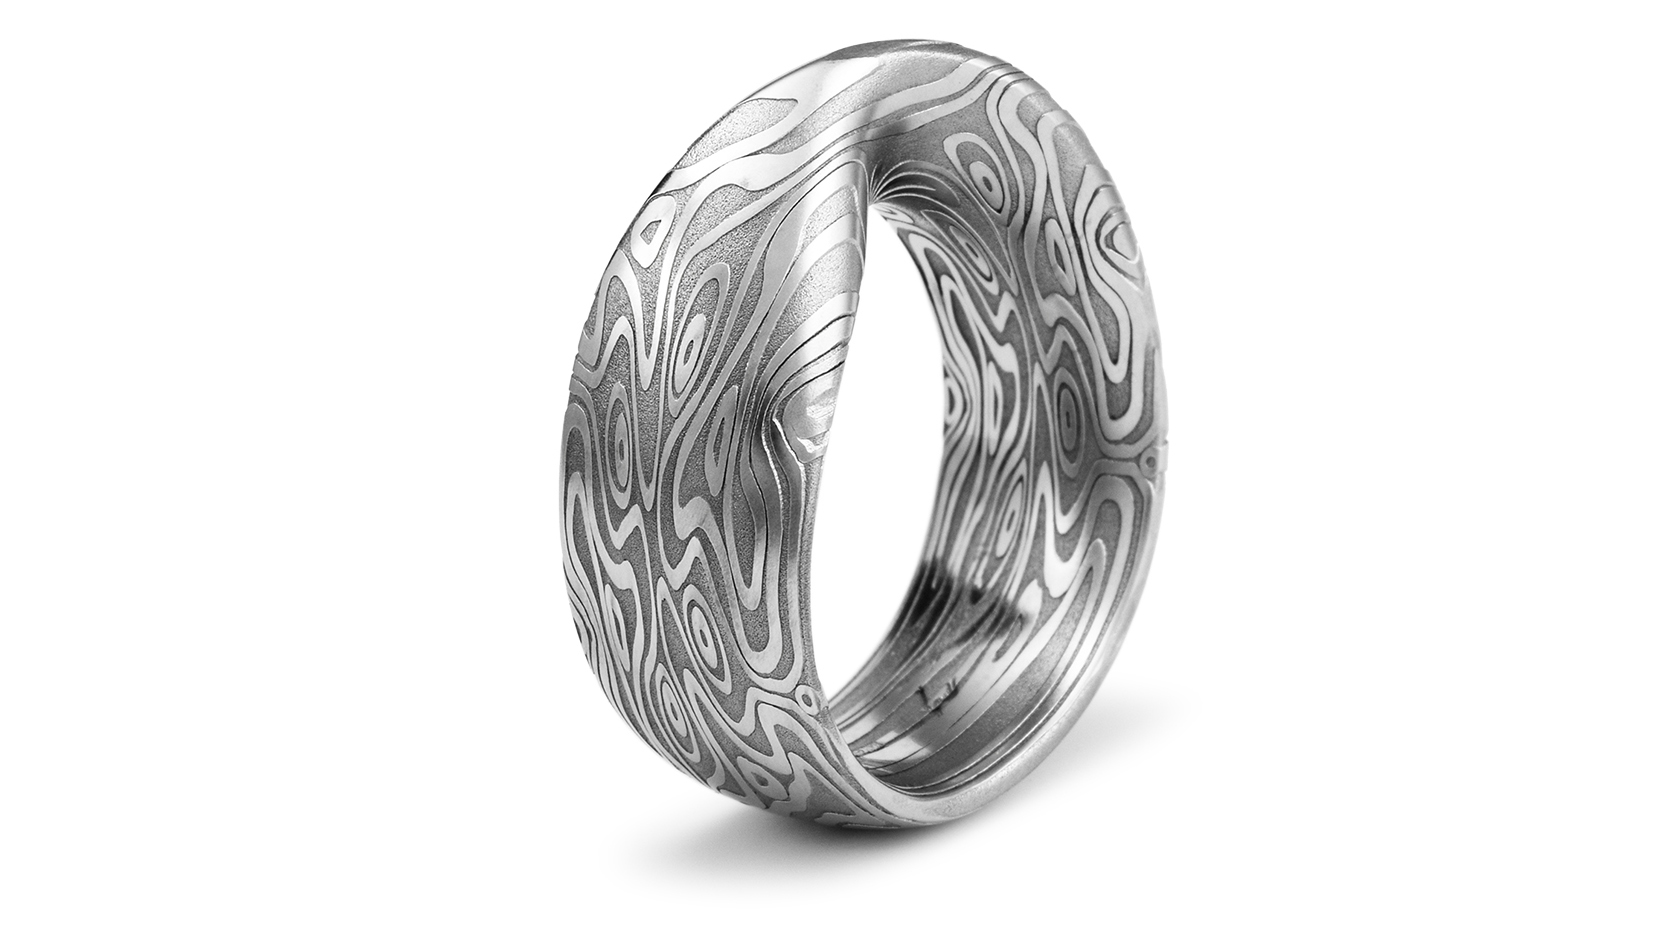 A seamless möbius strip ring custom carved from our Damascus.